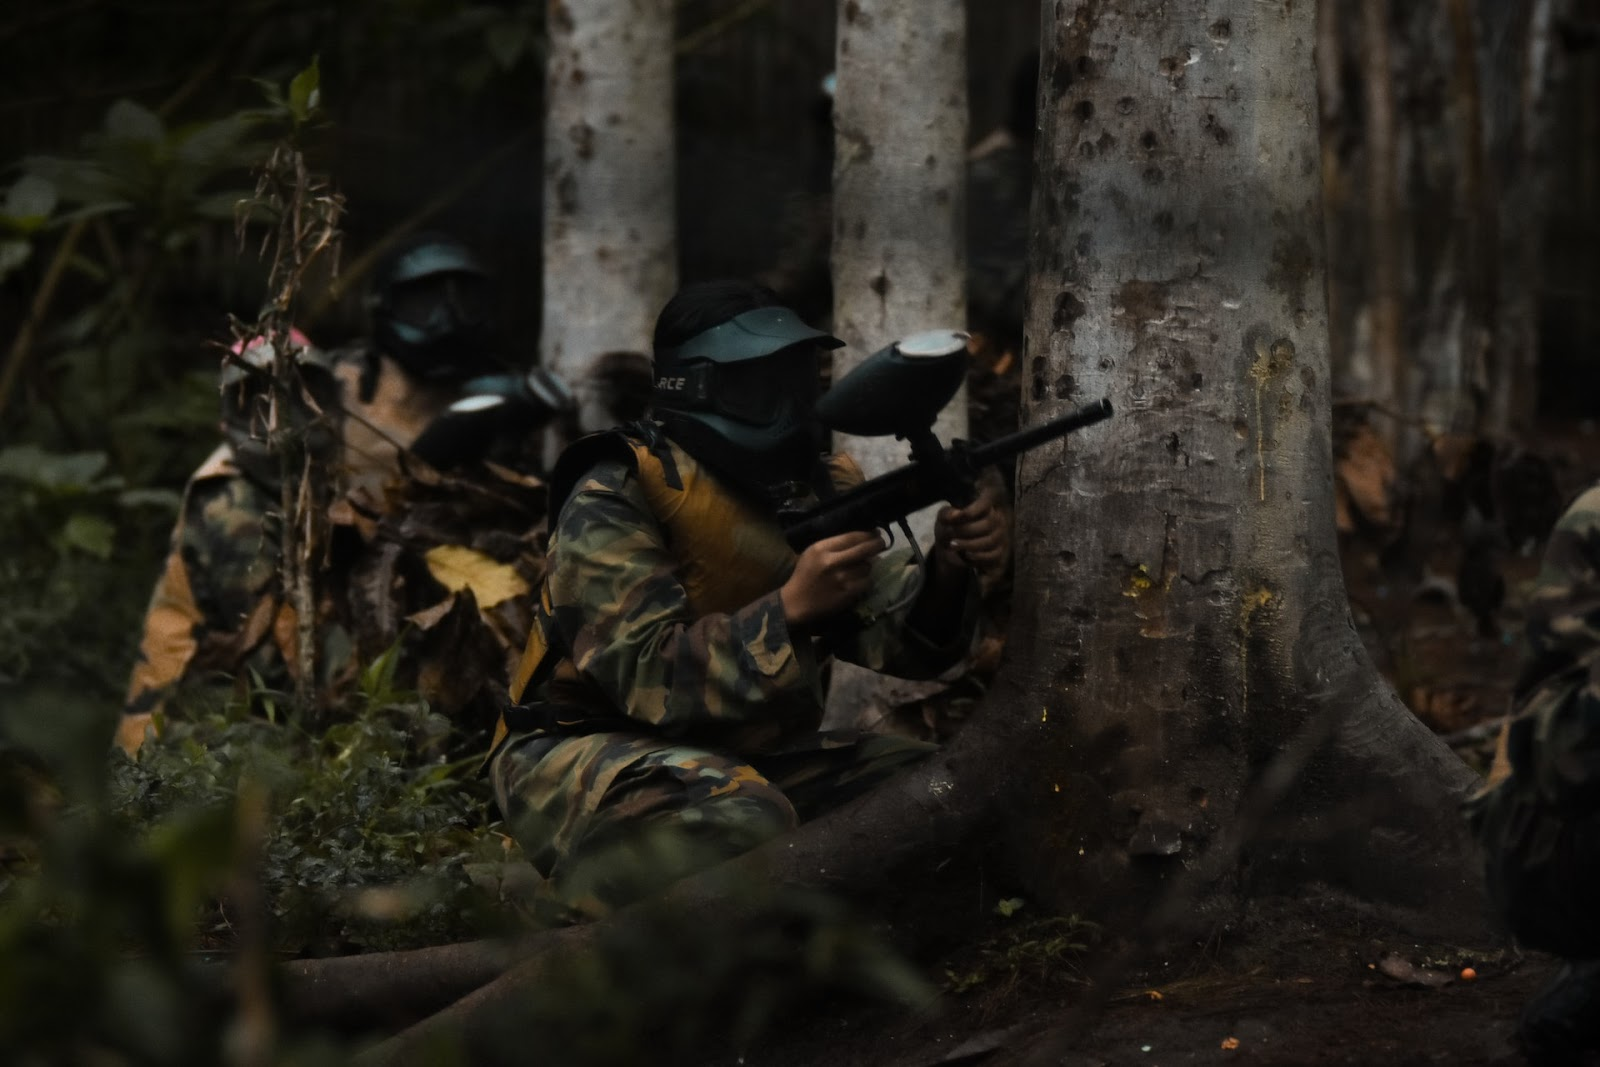 activities for people of all ages, a group of friends hiding behind a tree while playing a match of paintball